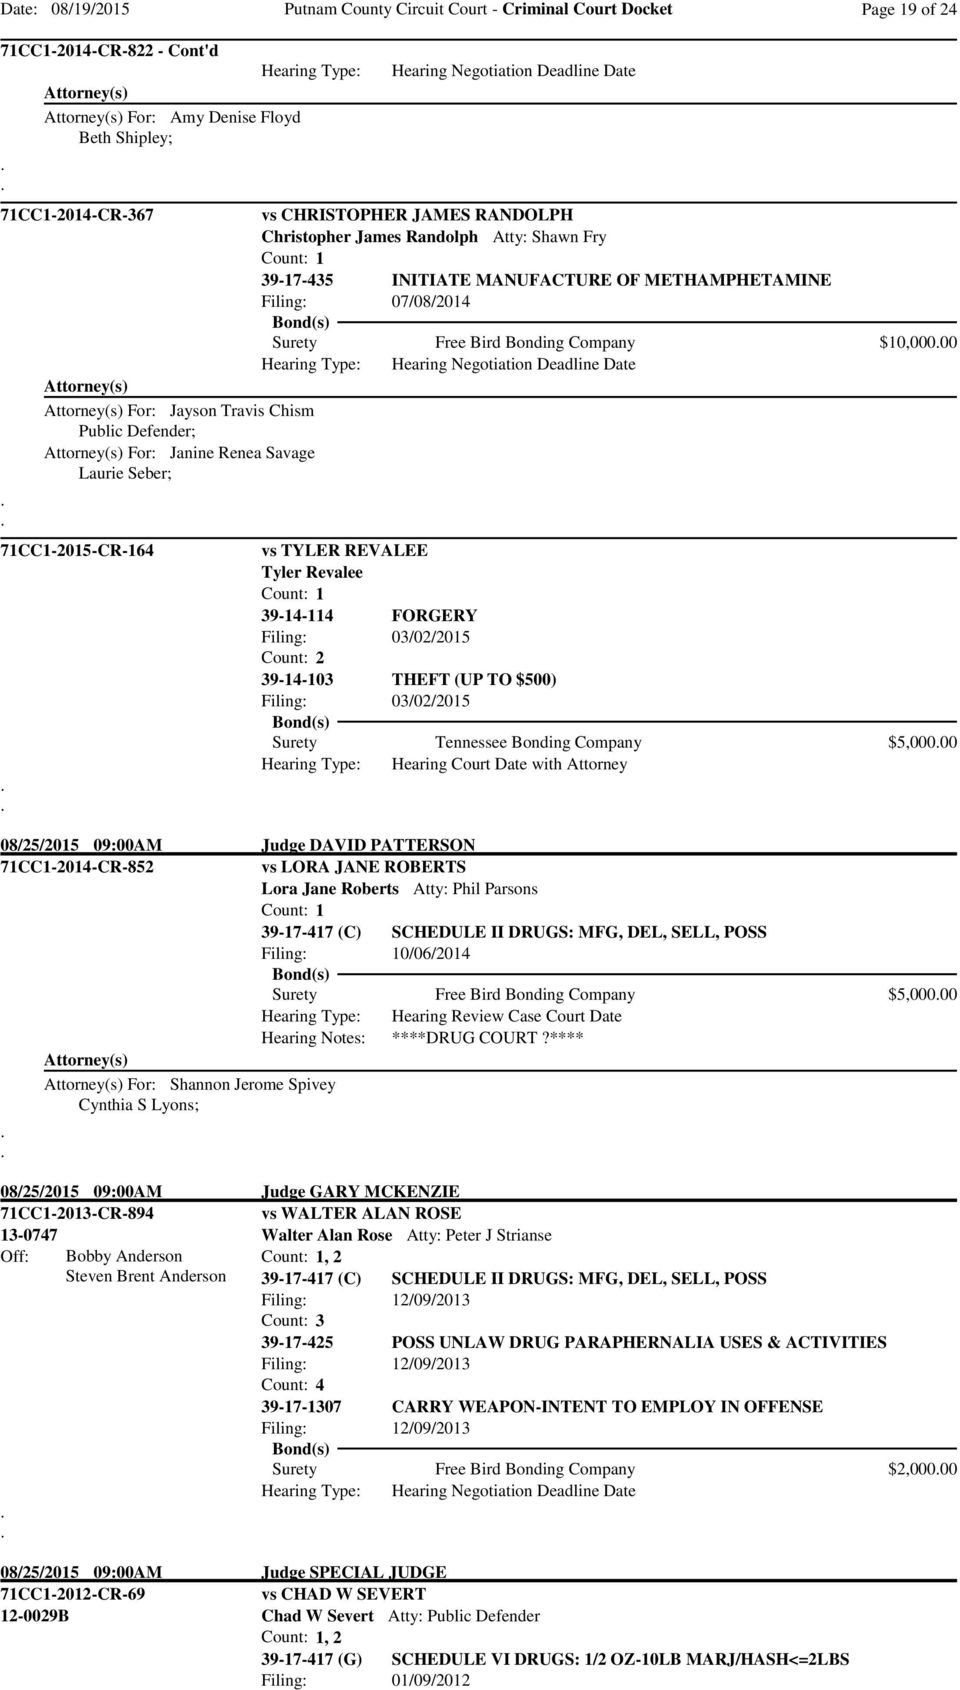 Savage Laurie Seber; 71CC1-2015-CR-164 vs TYLER REVALEE Tyler Revalee 39-14-114 FORGERY Filing: 03/02/2015 Filing: 03/02/2015 Surety Tennessee Bonding Company $5,00000 Hearing Court Date with